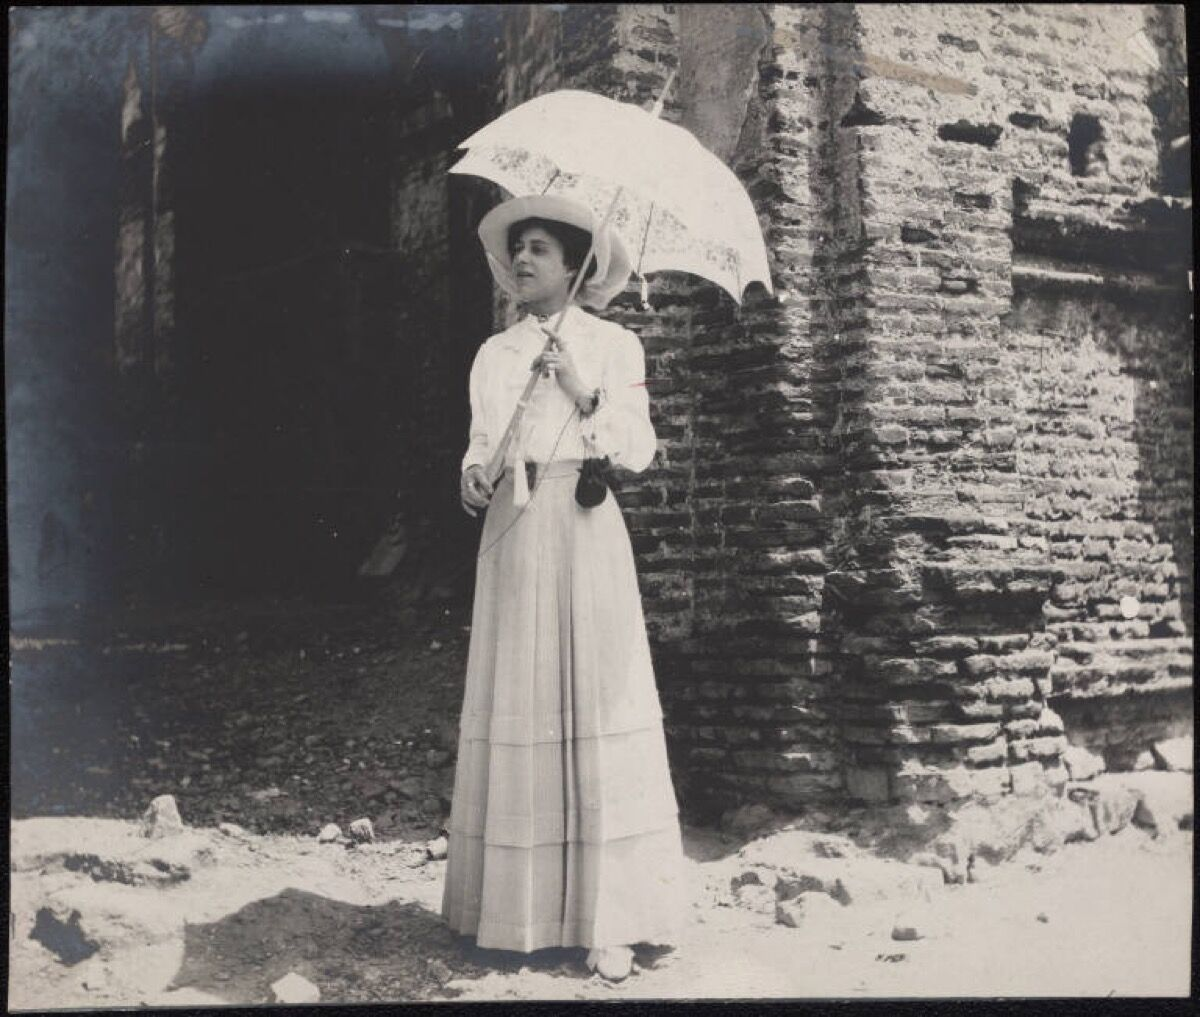 Grace Nail Johnson bridal photo in Panama, 1910. Via Wikimedia Commons.